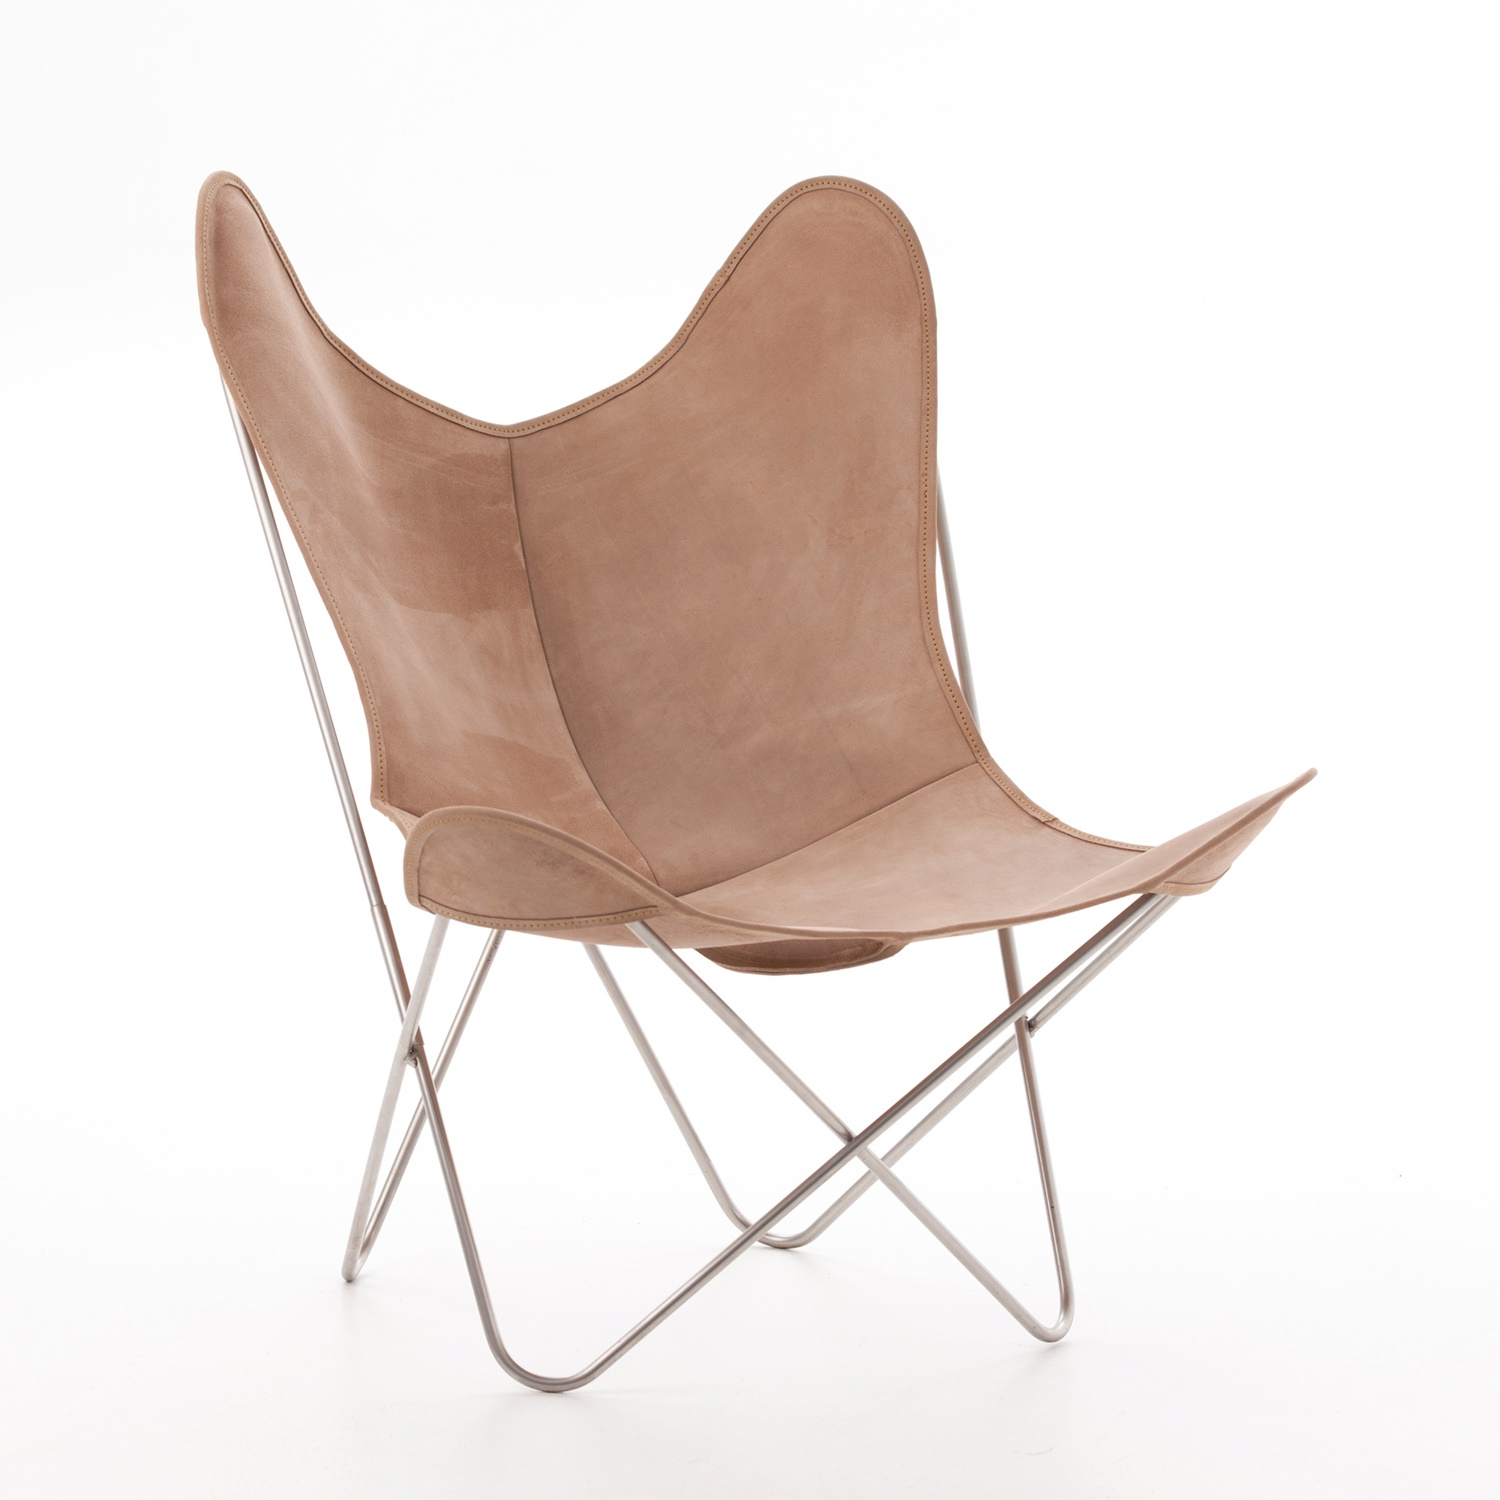 Butterfly Sessel Aa By Airborne Butterfly Chair Spaltleder Le Lodge